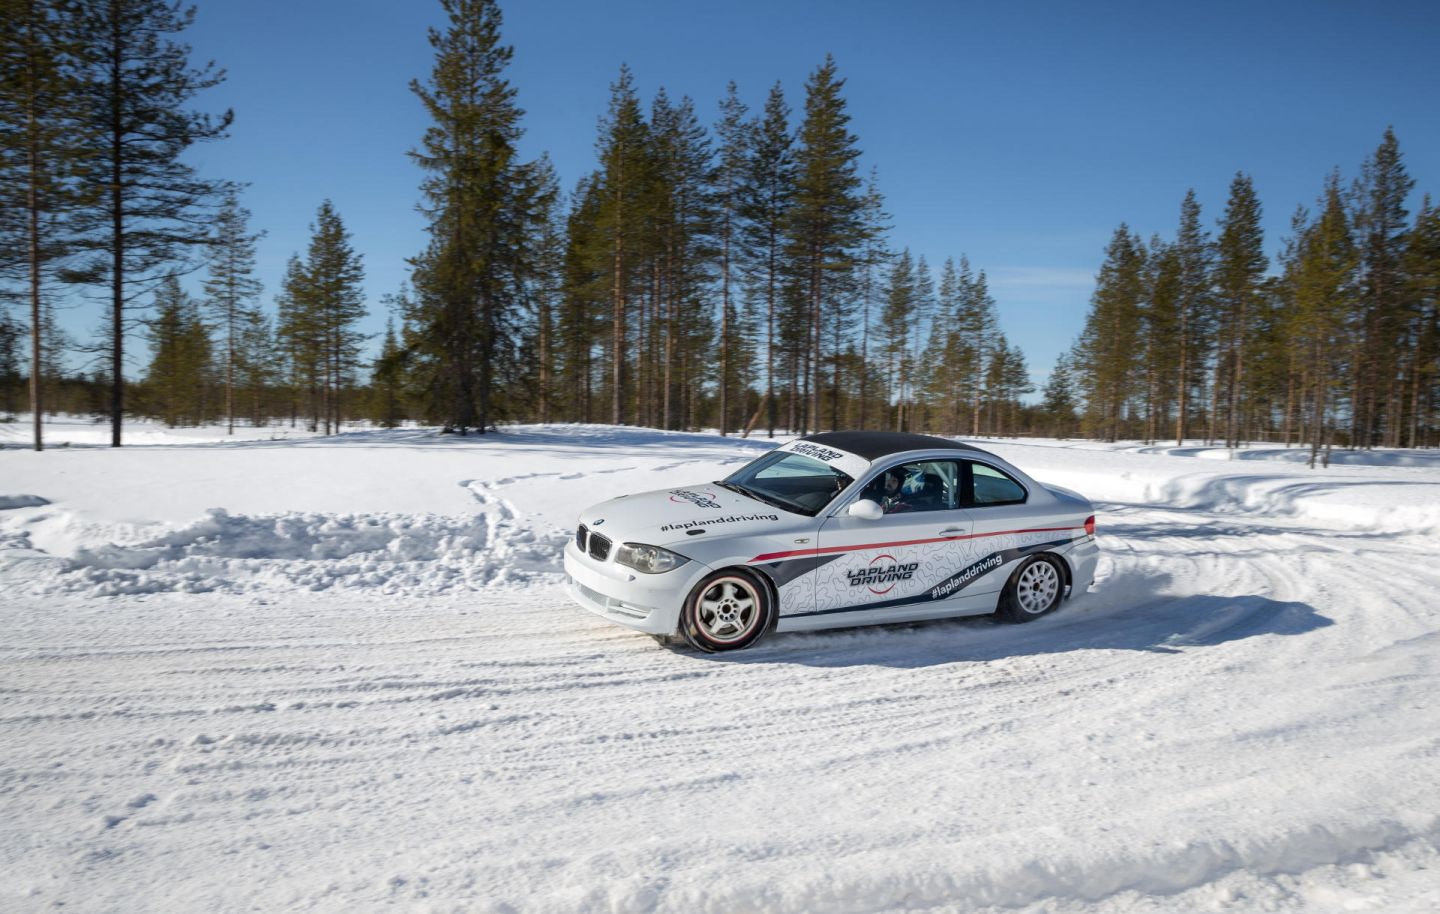 Car on snow track at Lapland Driving